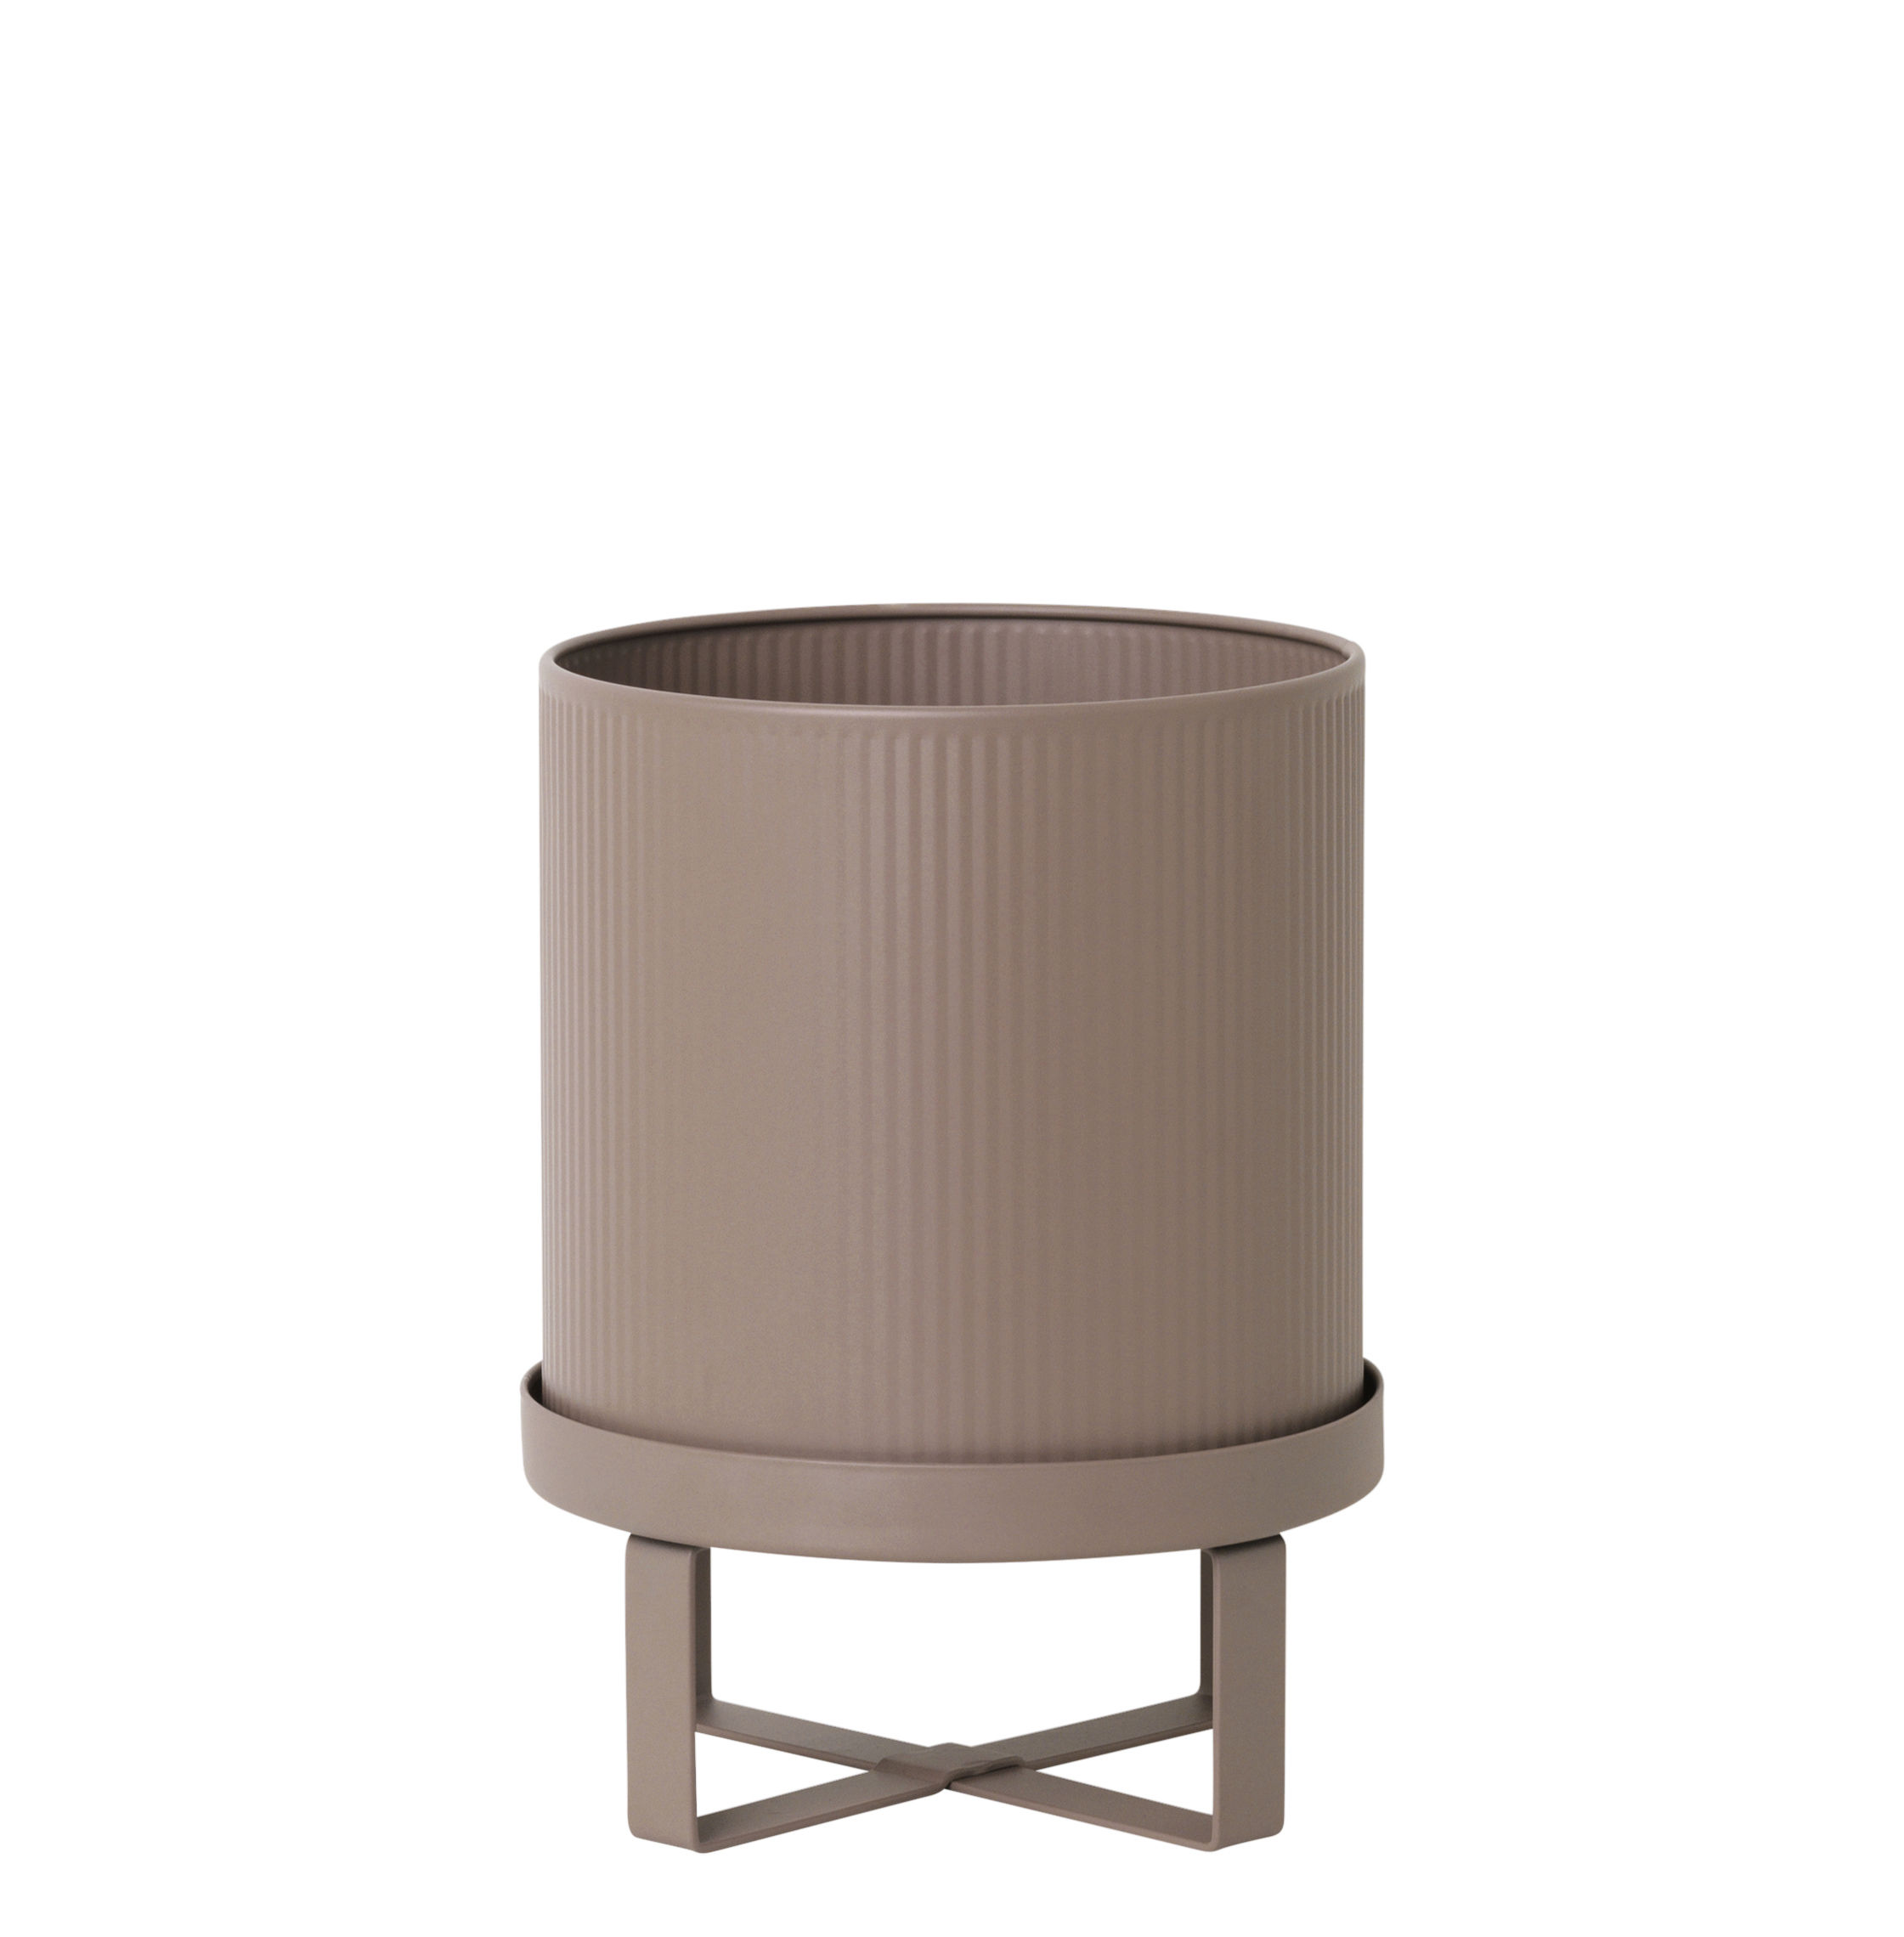 Outdoor - Pots & Plants - Bau Small Flowerpot - / Ø 18 cm - Metal by Ferm Living - Aged pink - Galvanized steel